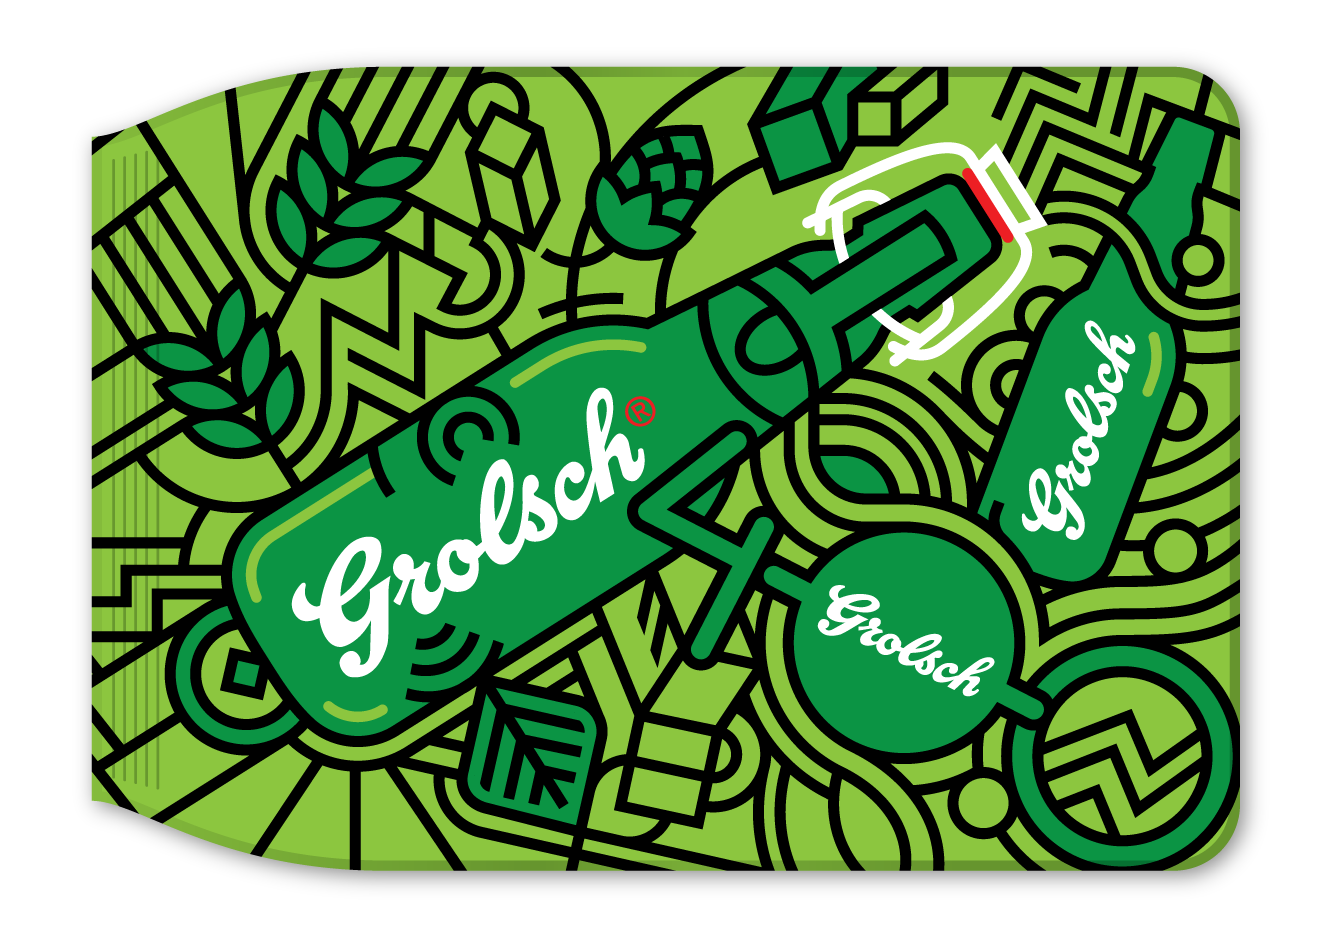 Grolsch Anniversary illustration